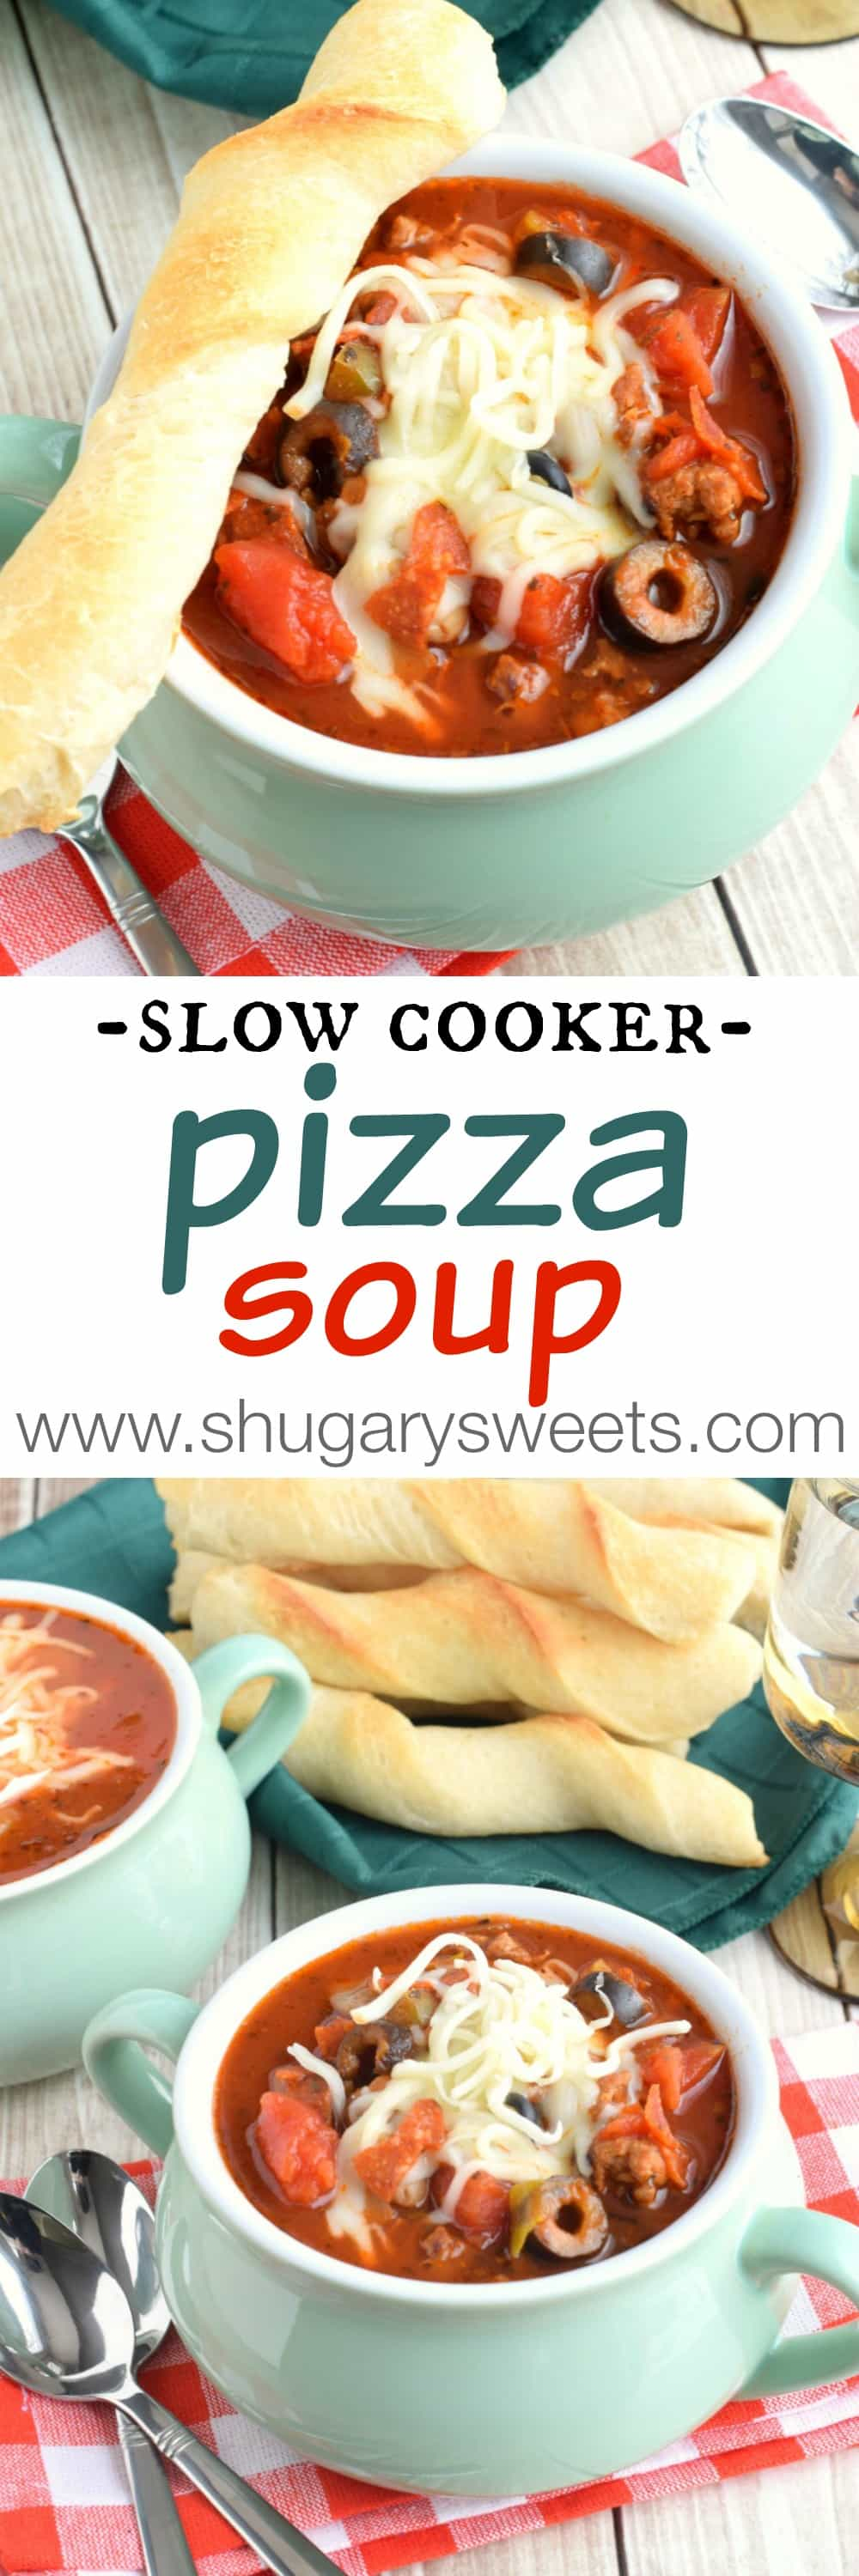 Slow Cooker Pizza Soup by Shugary Sweets | Epicurious Community Table